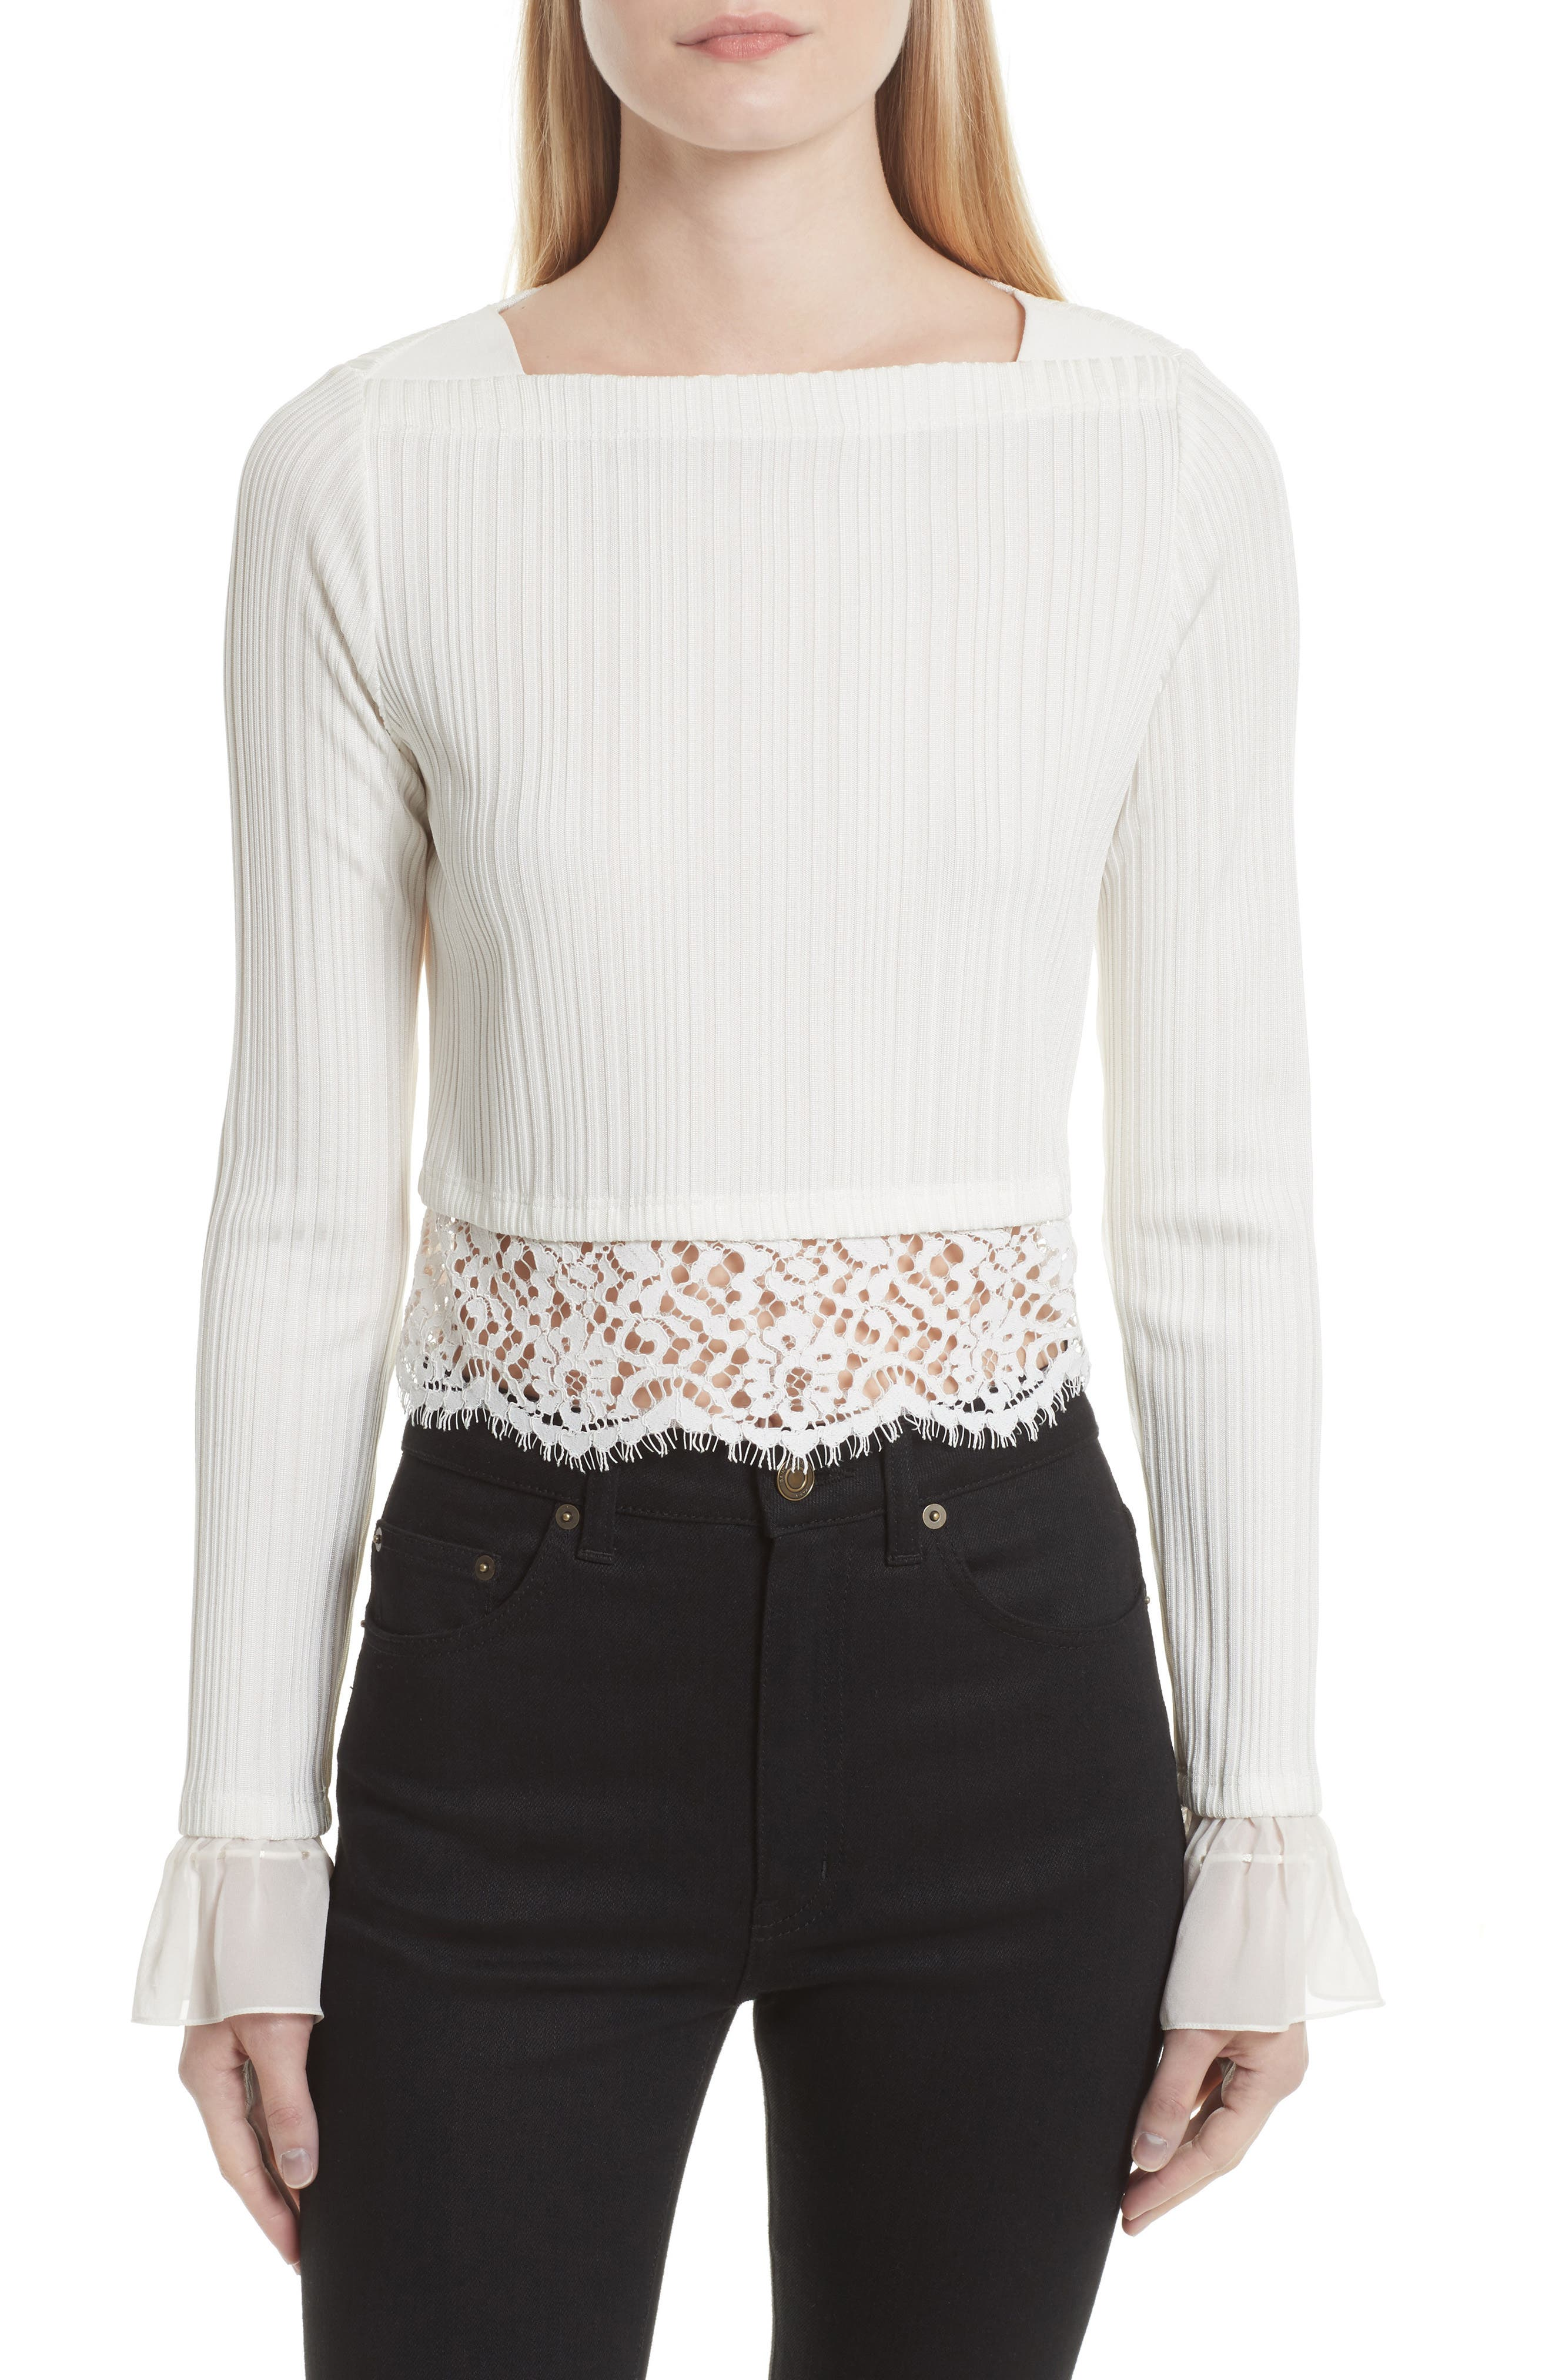 3.1 Phillip Lim Lace Hem Crop Top